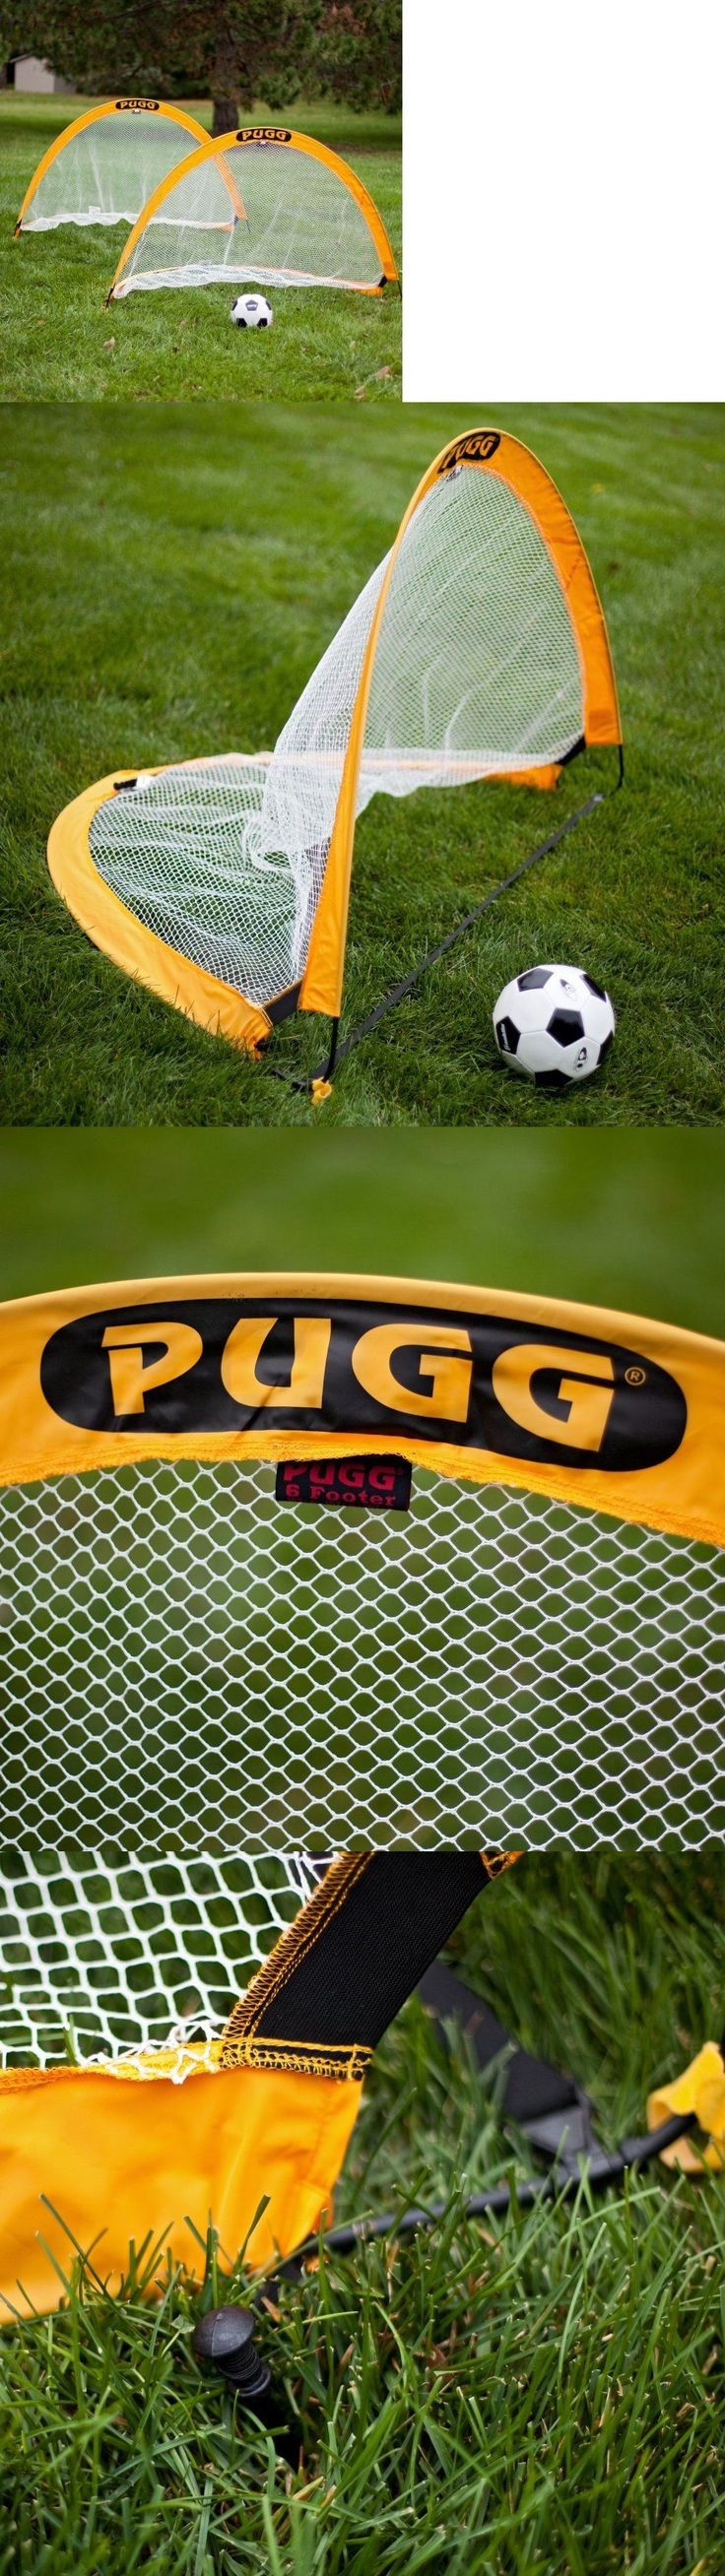 Goals and Nets 159180: 6 Ft. Pugg Soccer Goals - Single Goal -> BUY IT NOW ONLY: $56.25 on eBay!